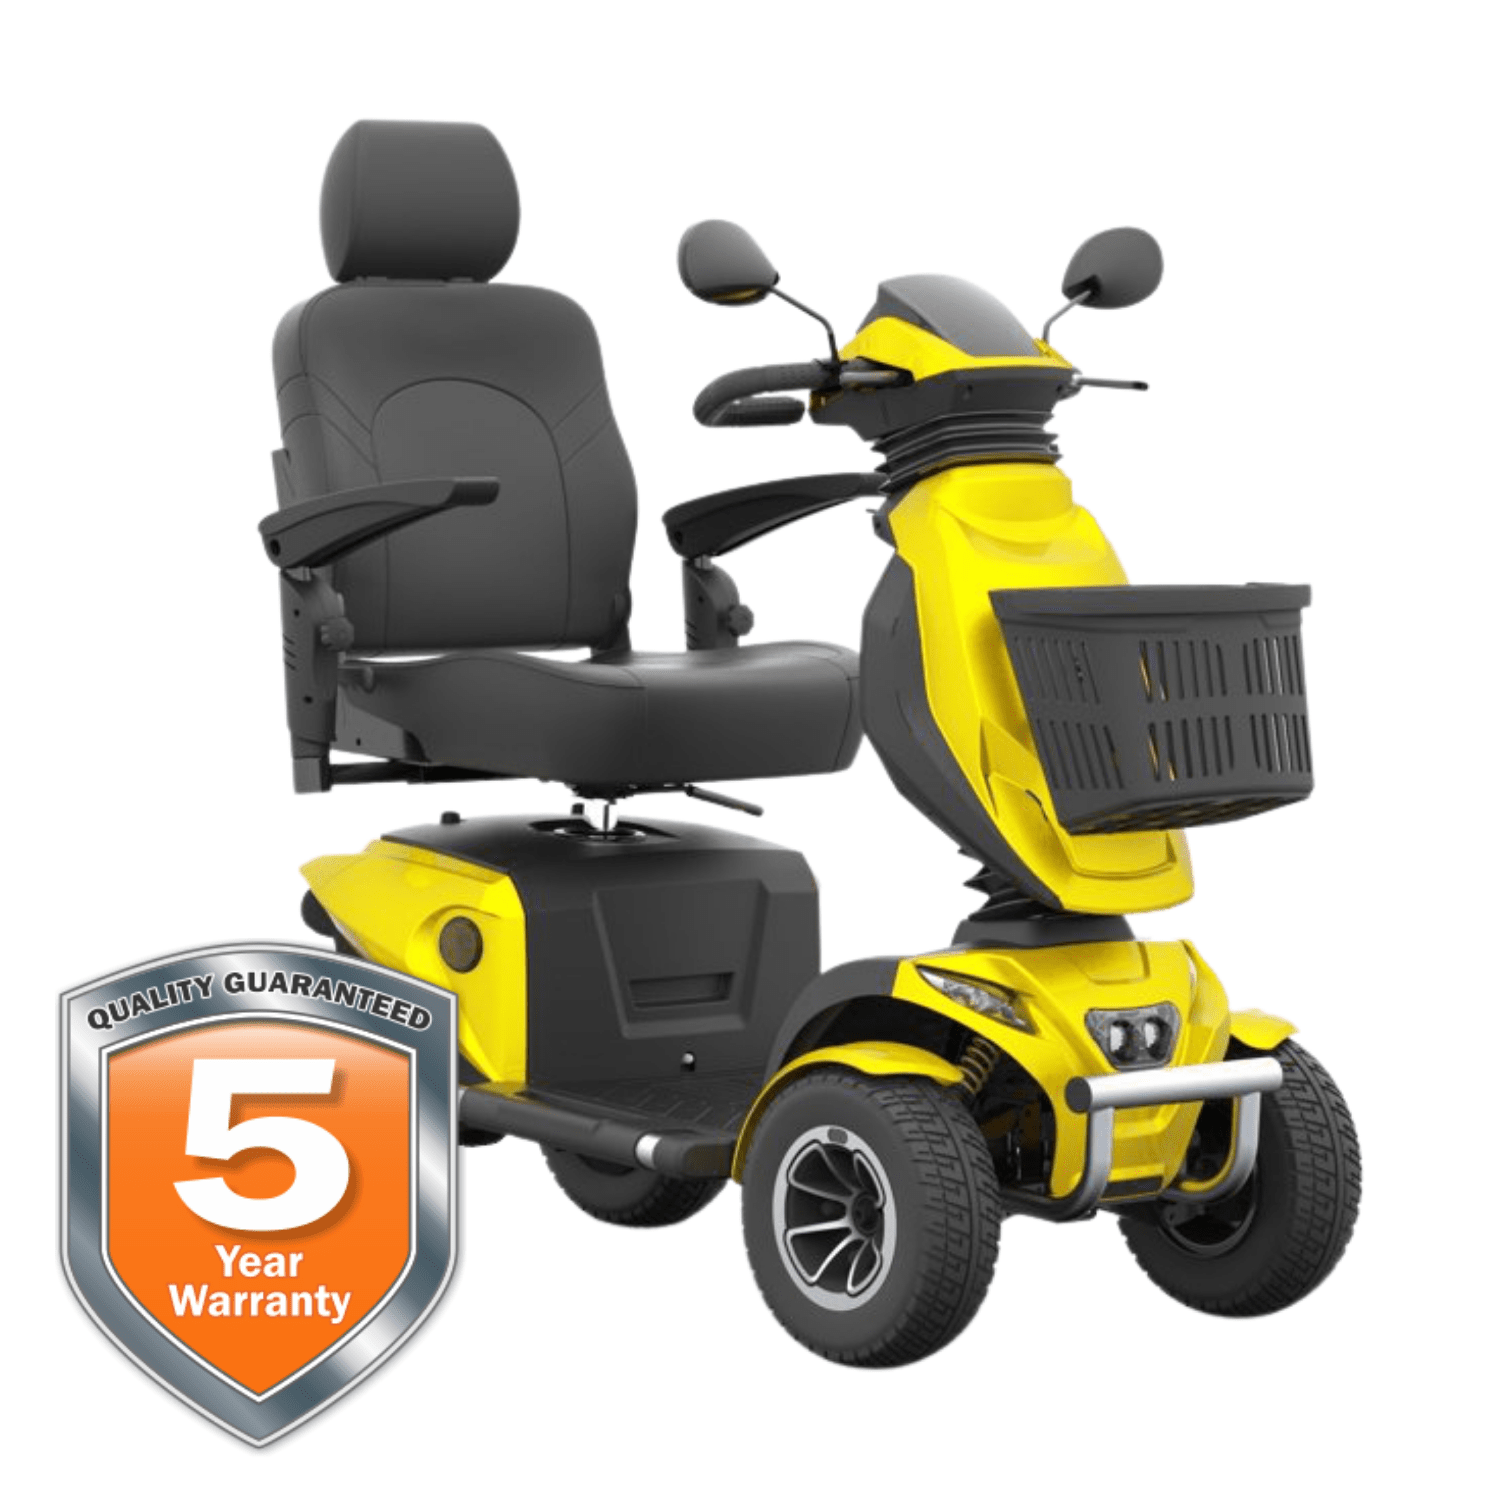 Top Gun Avenger Mobility Scooter – Product Image